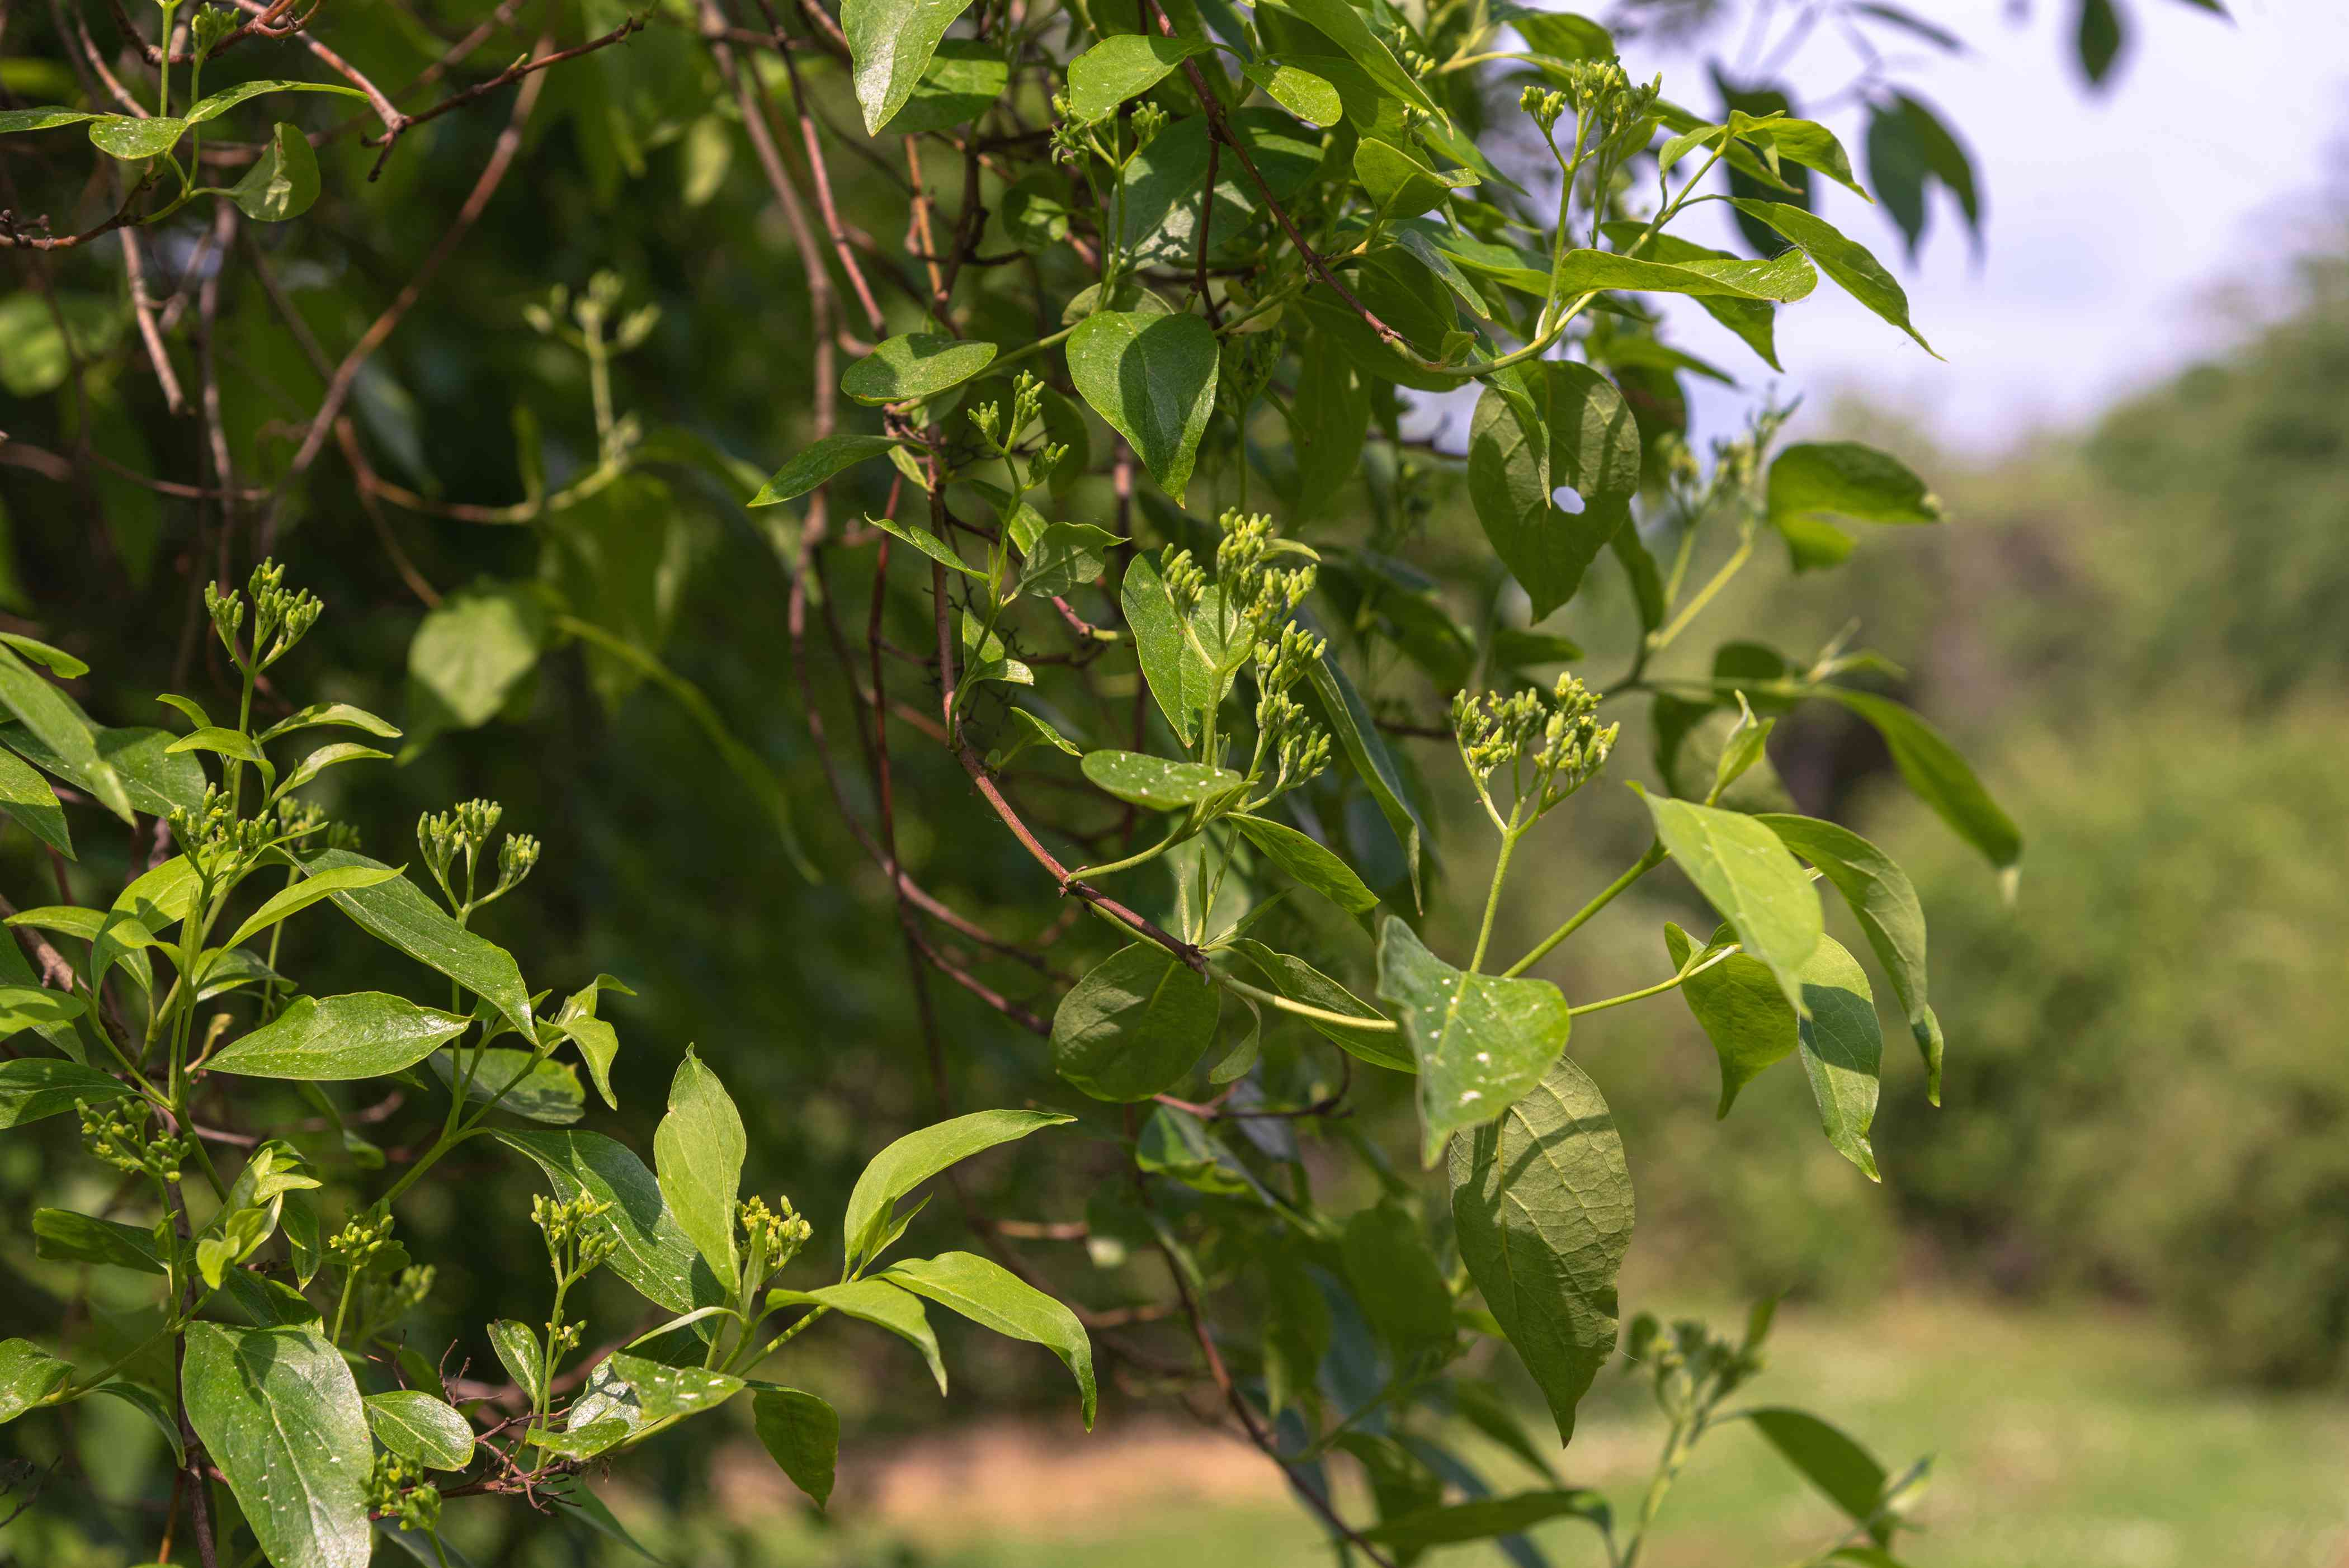 Gray dogwood native shrub with multi-stemmed branches with flower buds in sunlight